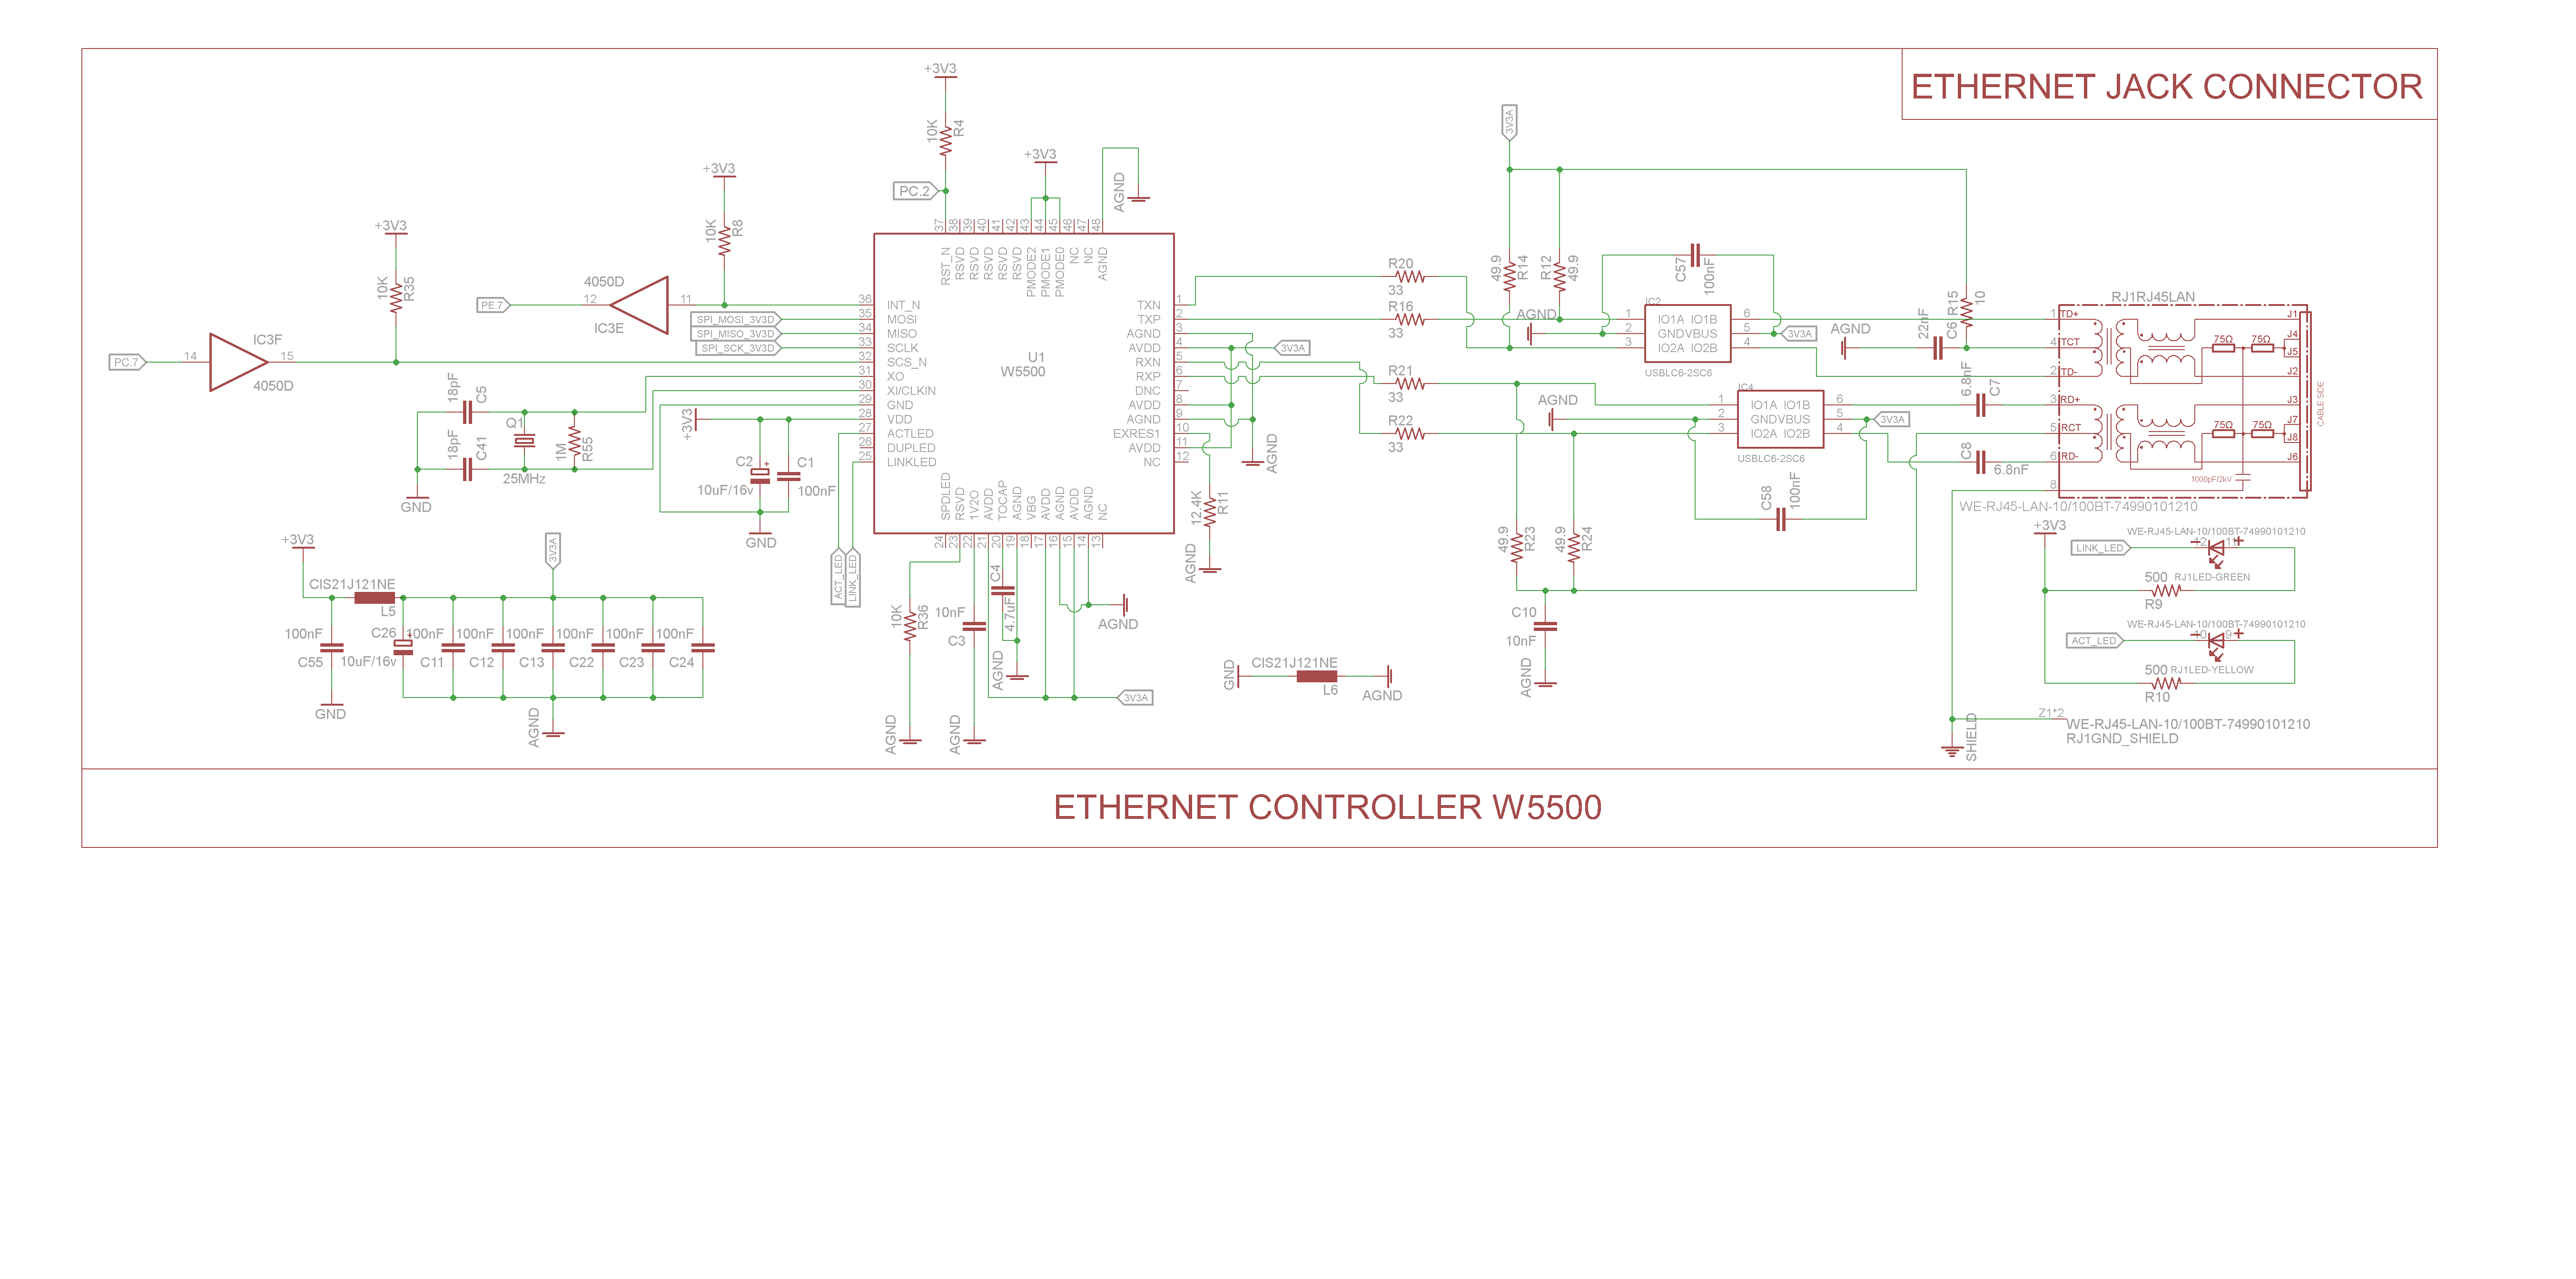 Rj45 Pcb Connector Ethernet Layout Guidelines